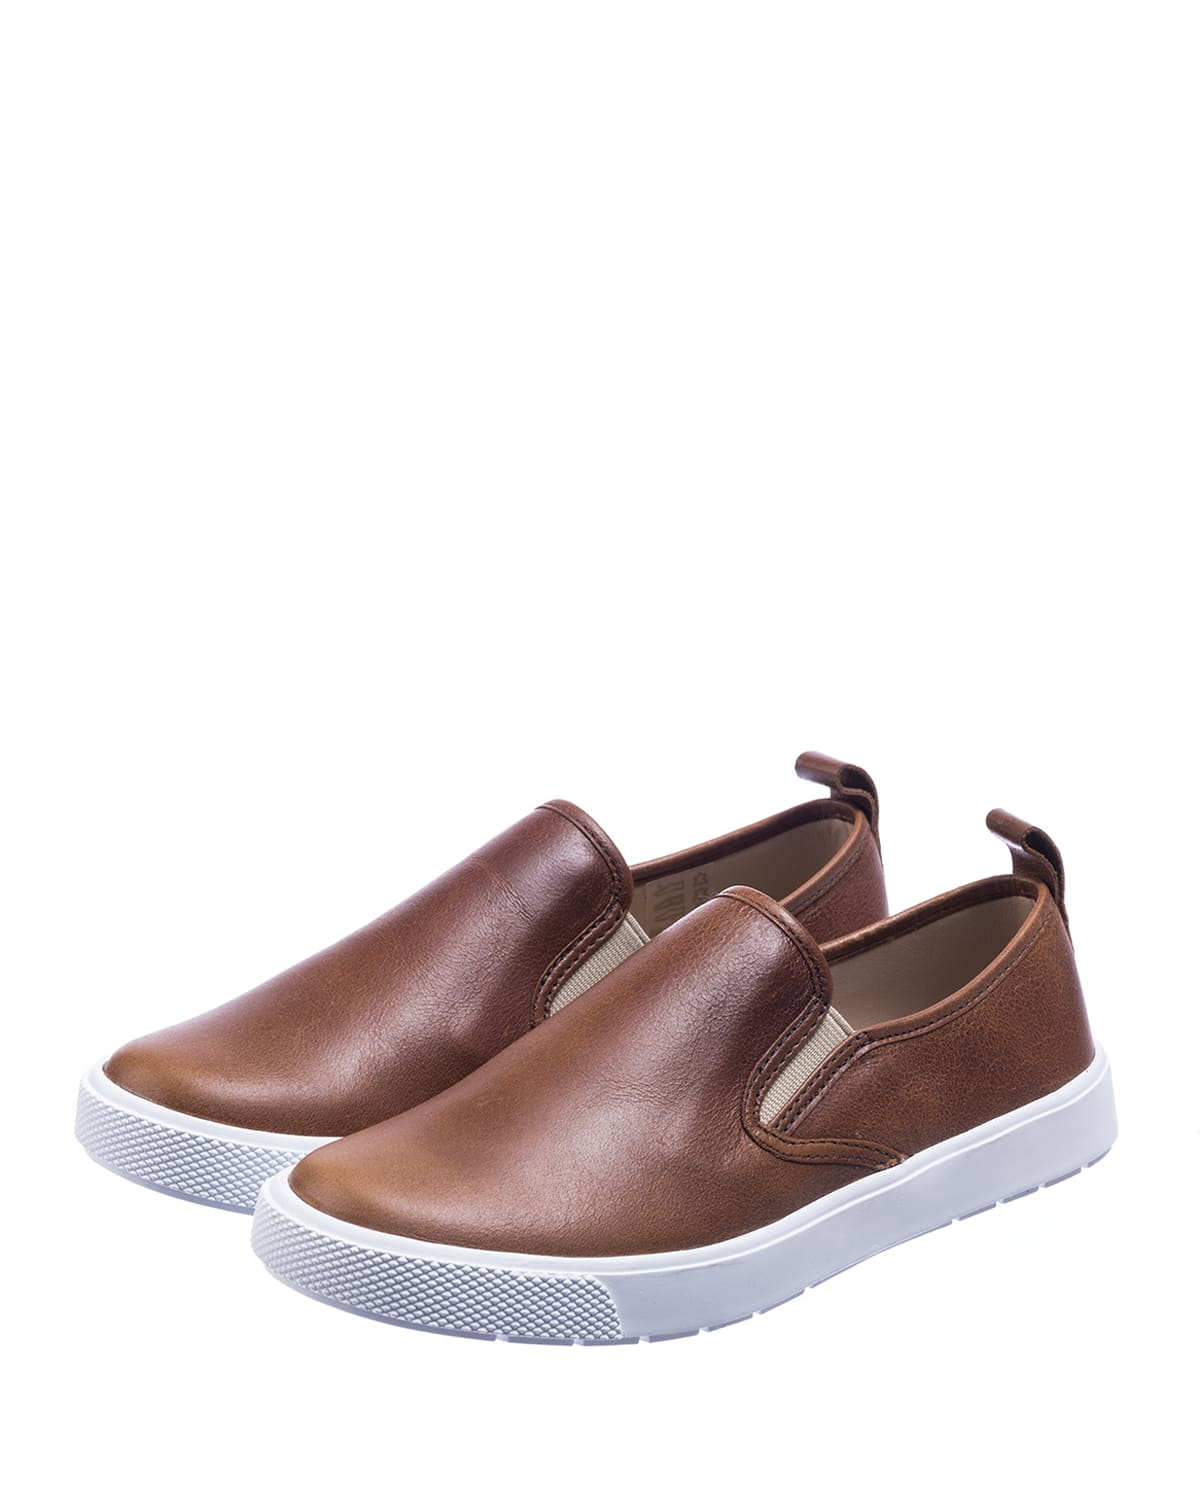 Boy's Slip-On Leather Sneakers